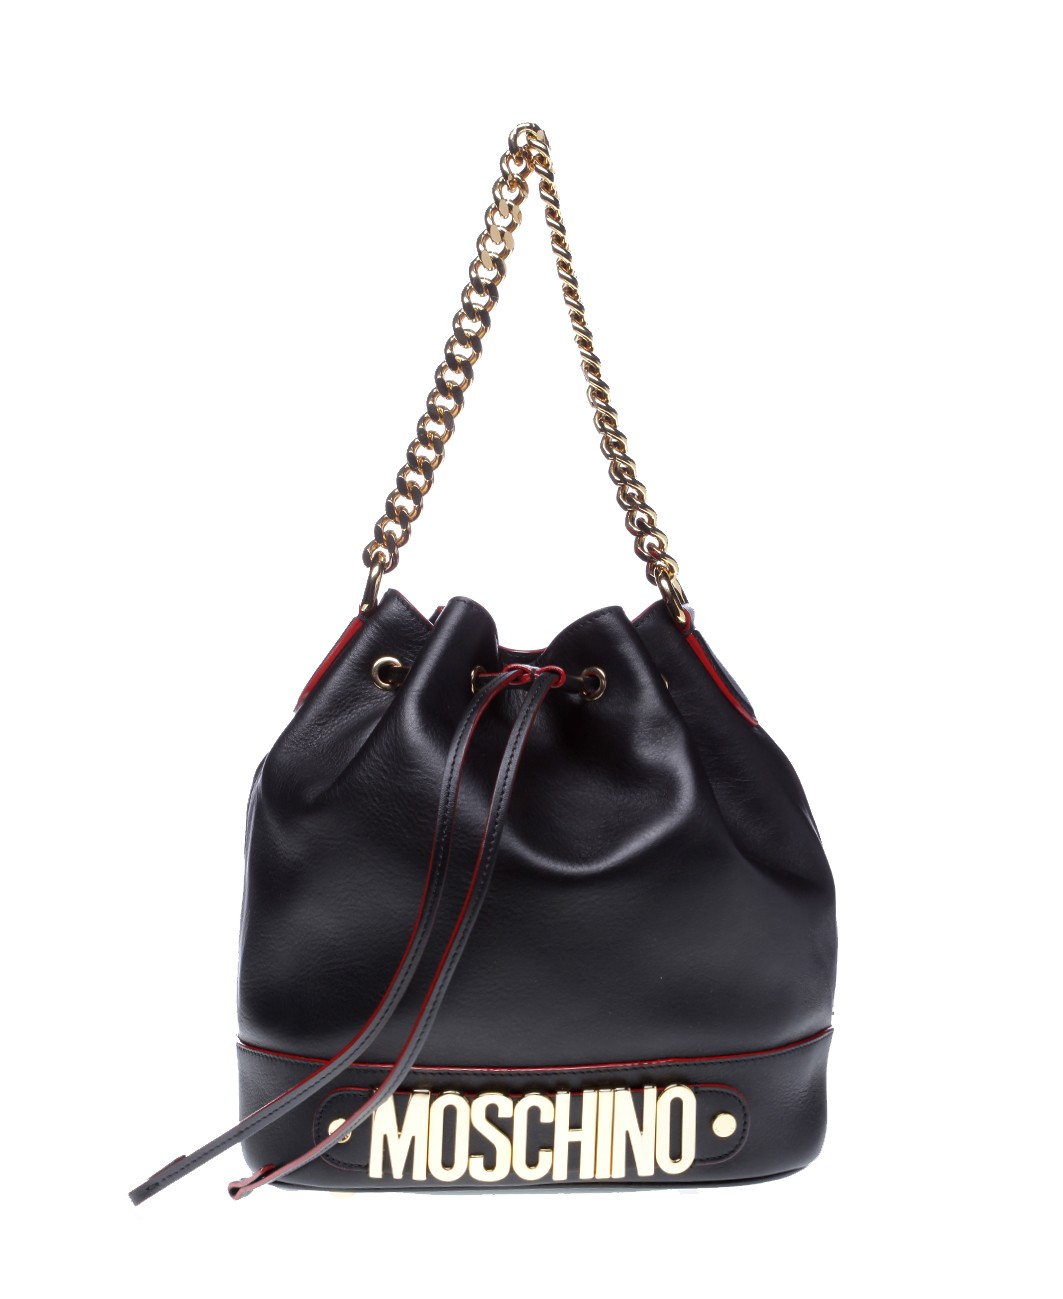 Moschino chain shoulder bag Free Shipping Visit Outlet Locations Cheap Price Sale Pick A Best An5OjliJmr